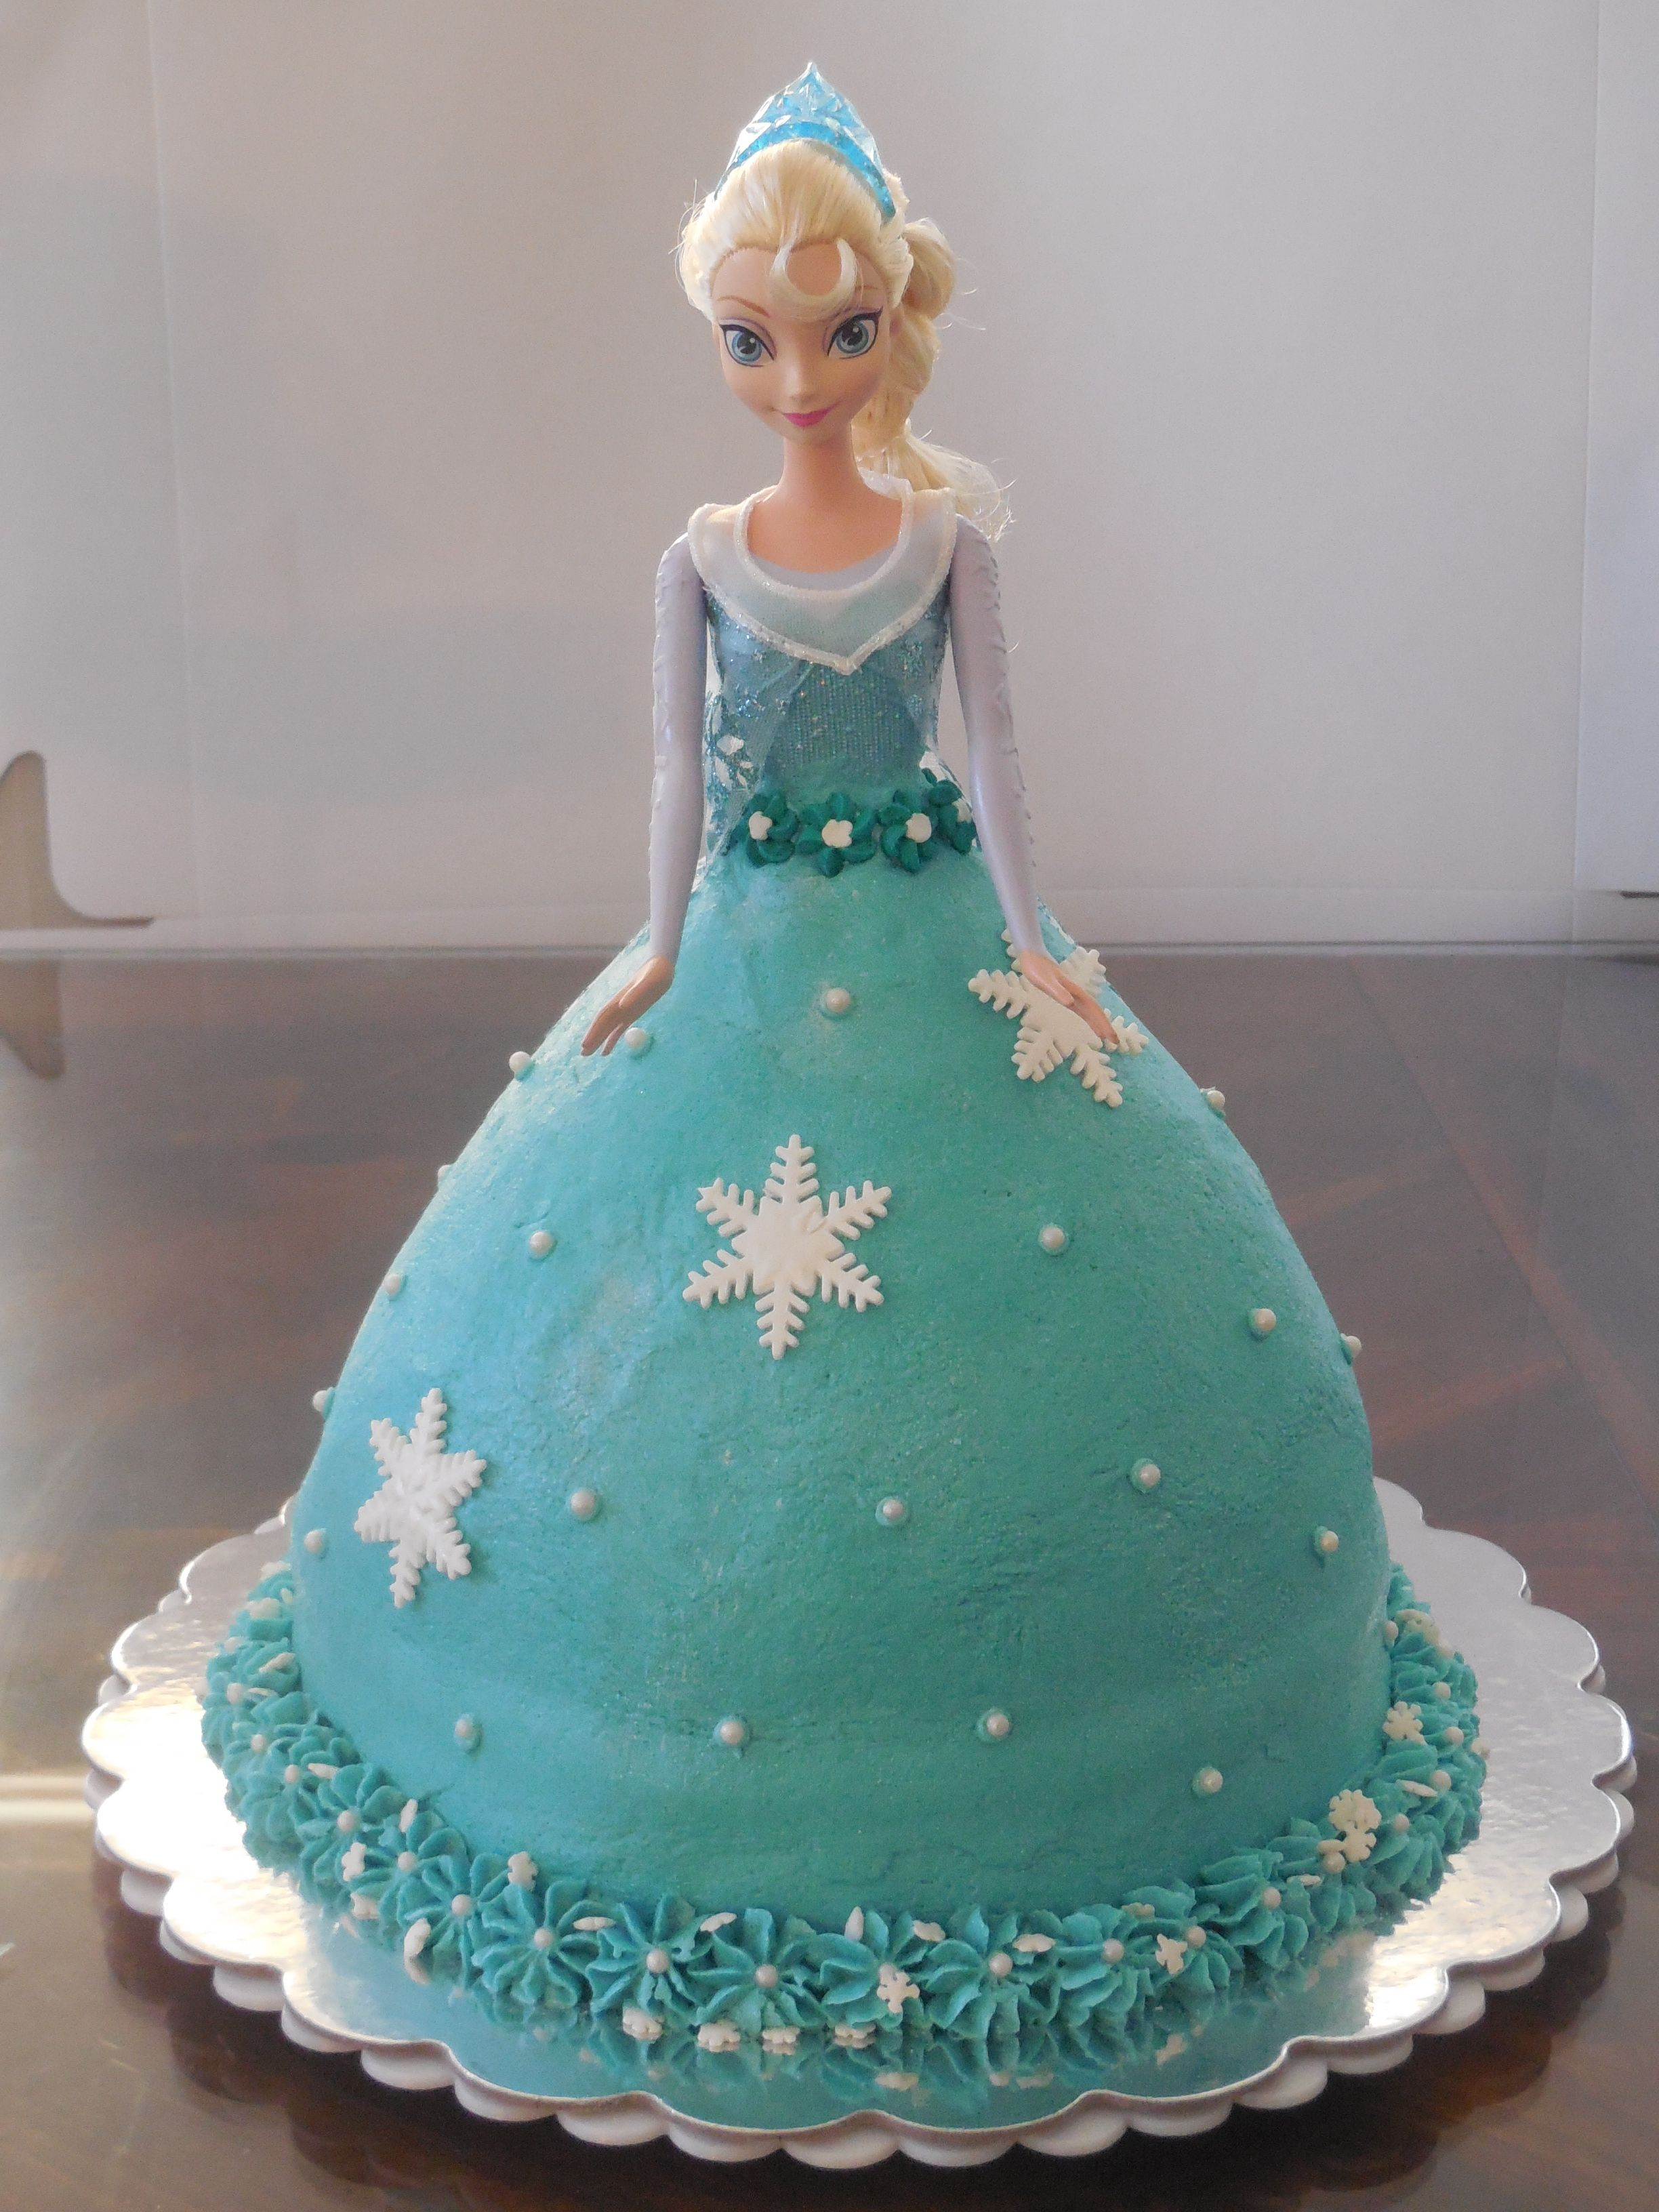 Frozen Elsa cake doll from Target dress is iced in buttercream